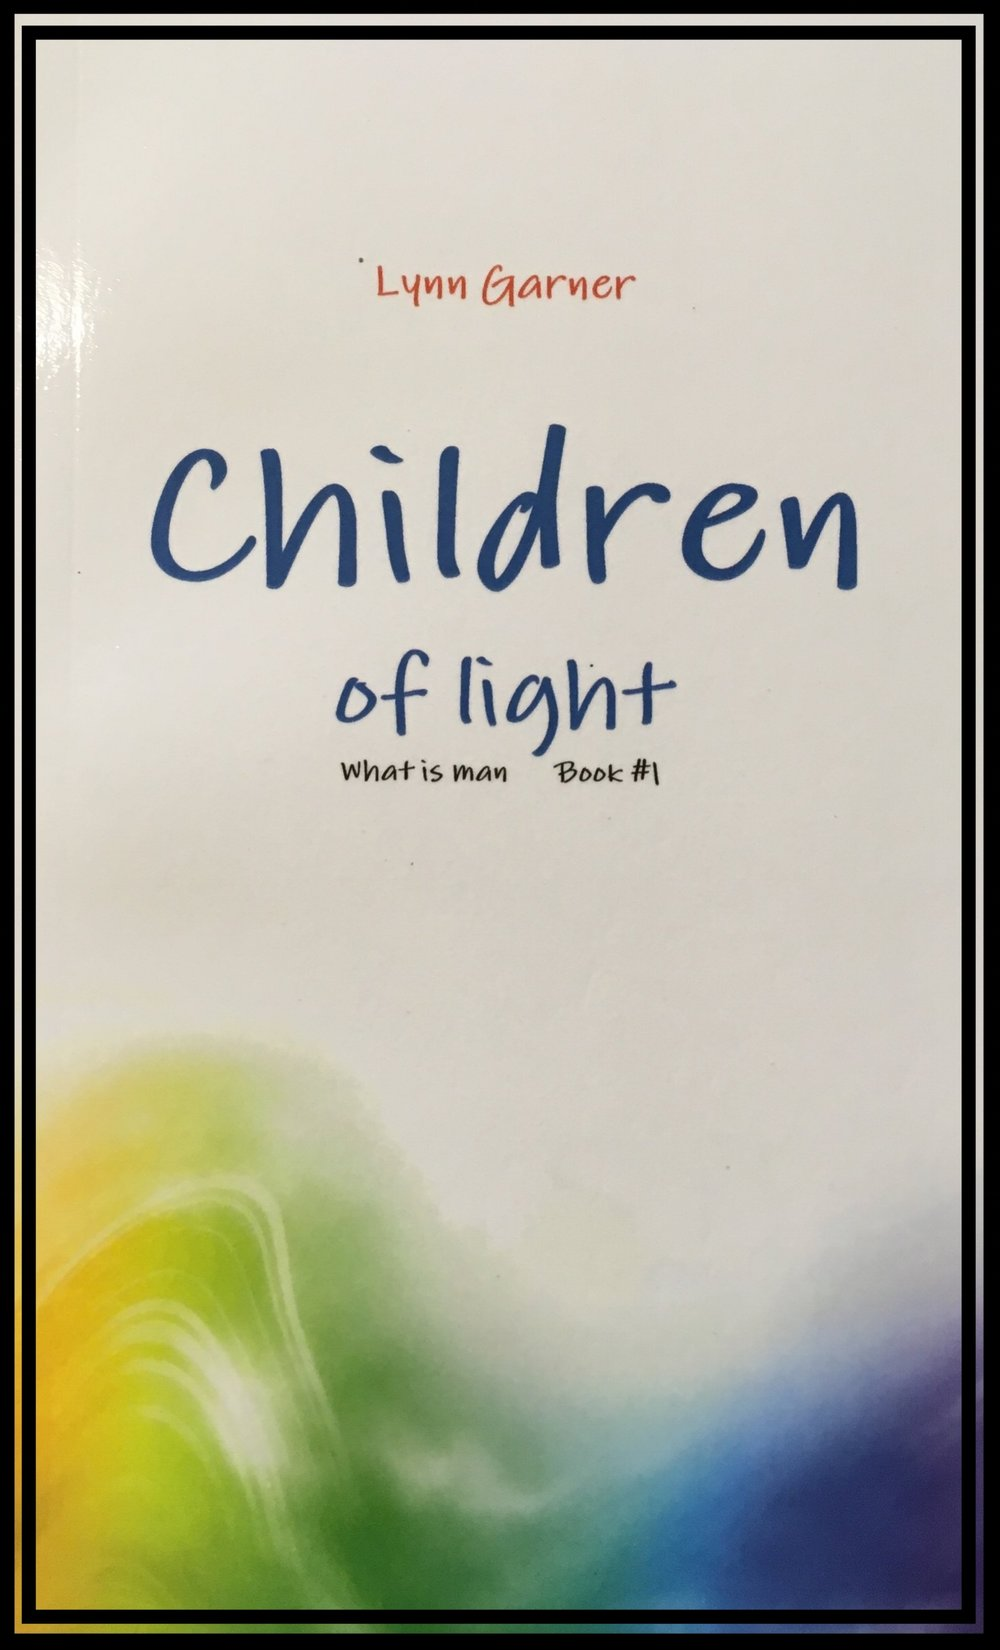 you just may be more than you know you are - This discusses in detail what it means to be a Child of light and not of darkness.